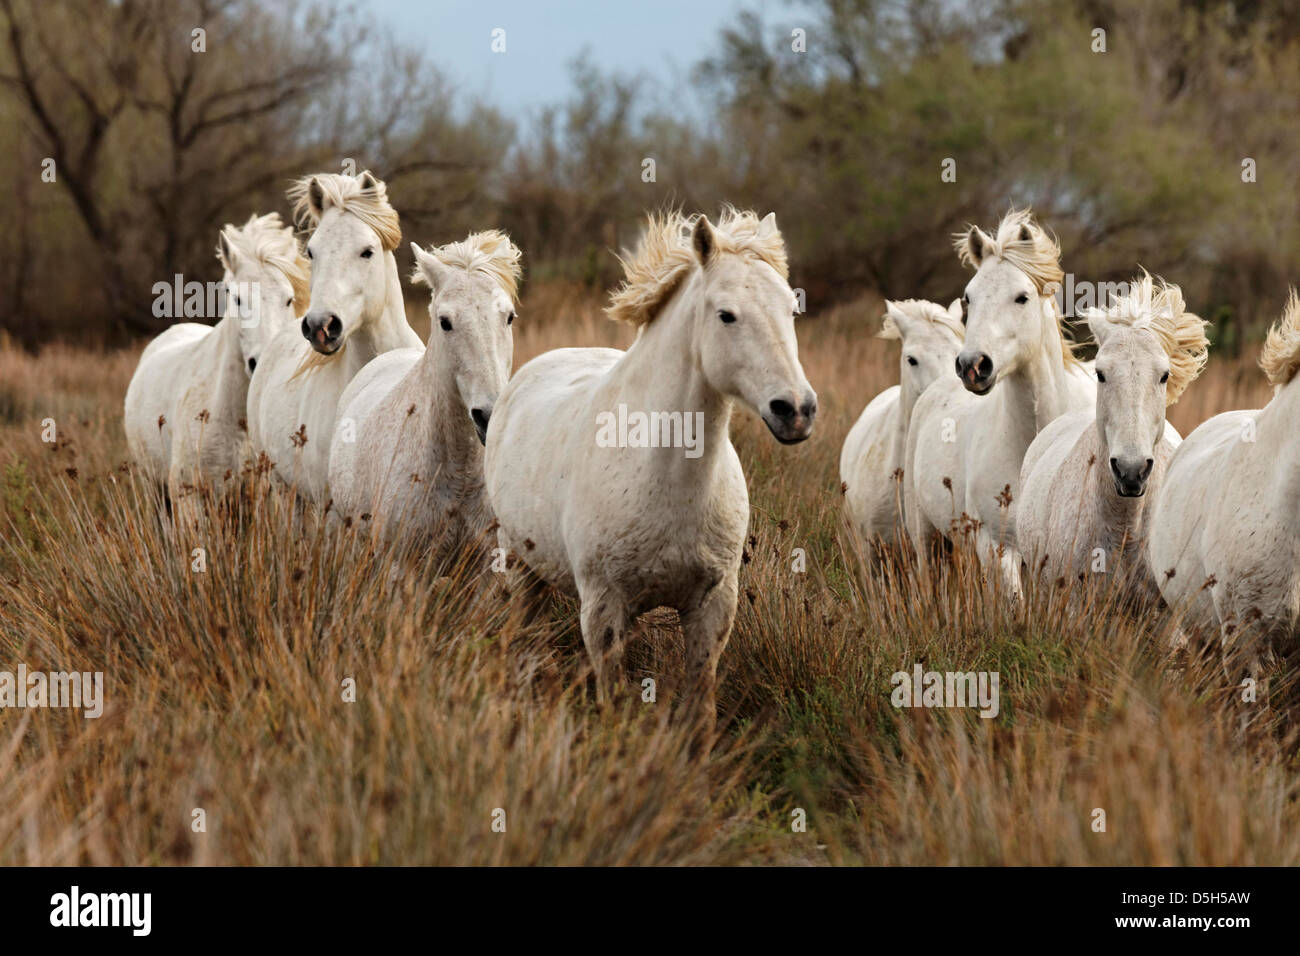 Camargue horses running through marshy wetland of the Camargue, southern France - Stock Image